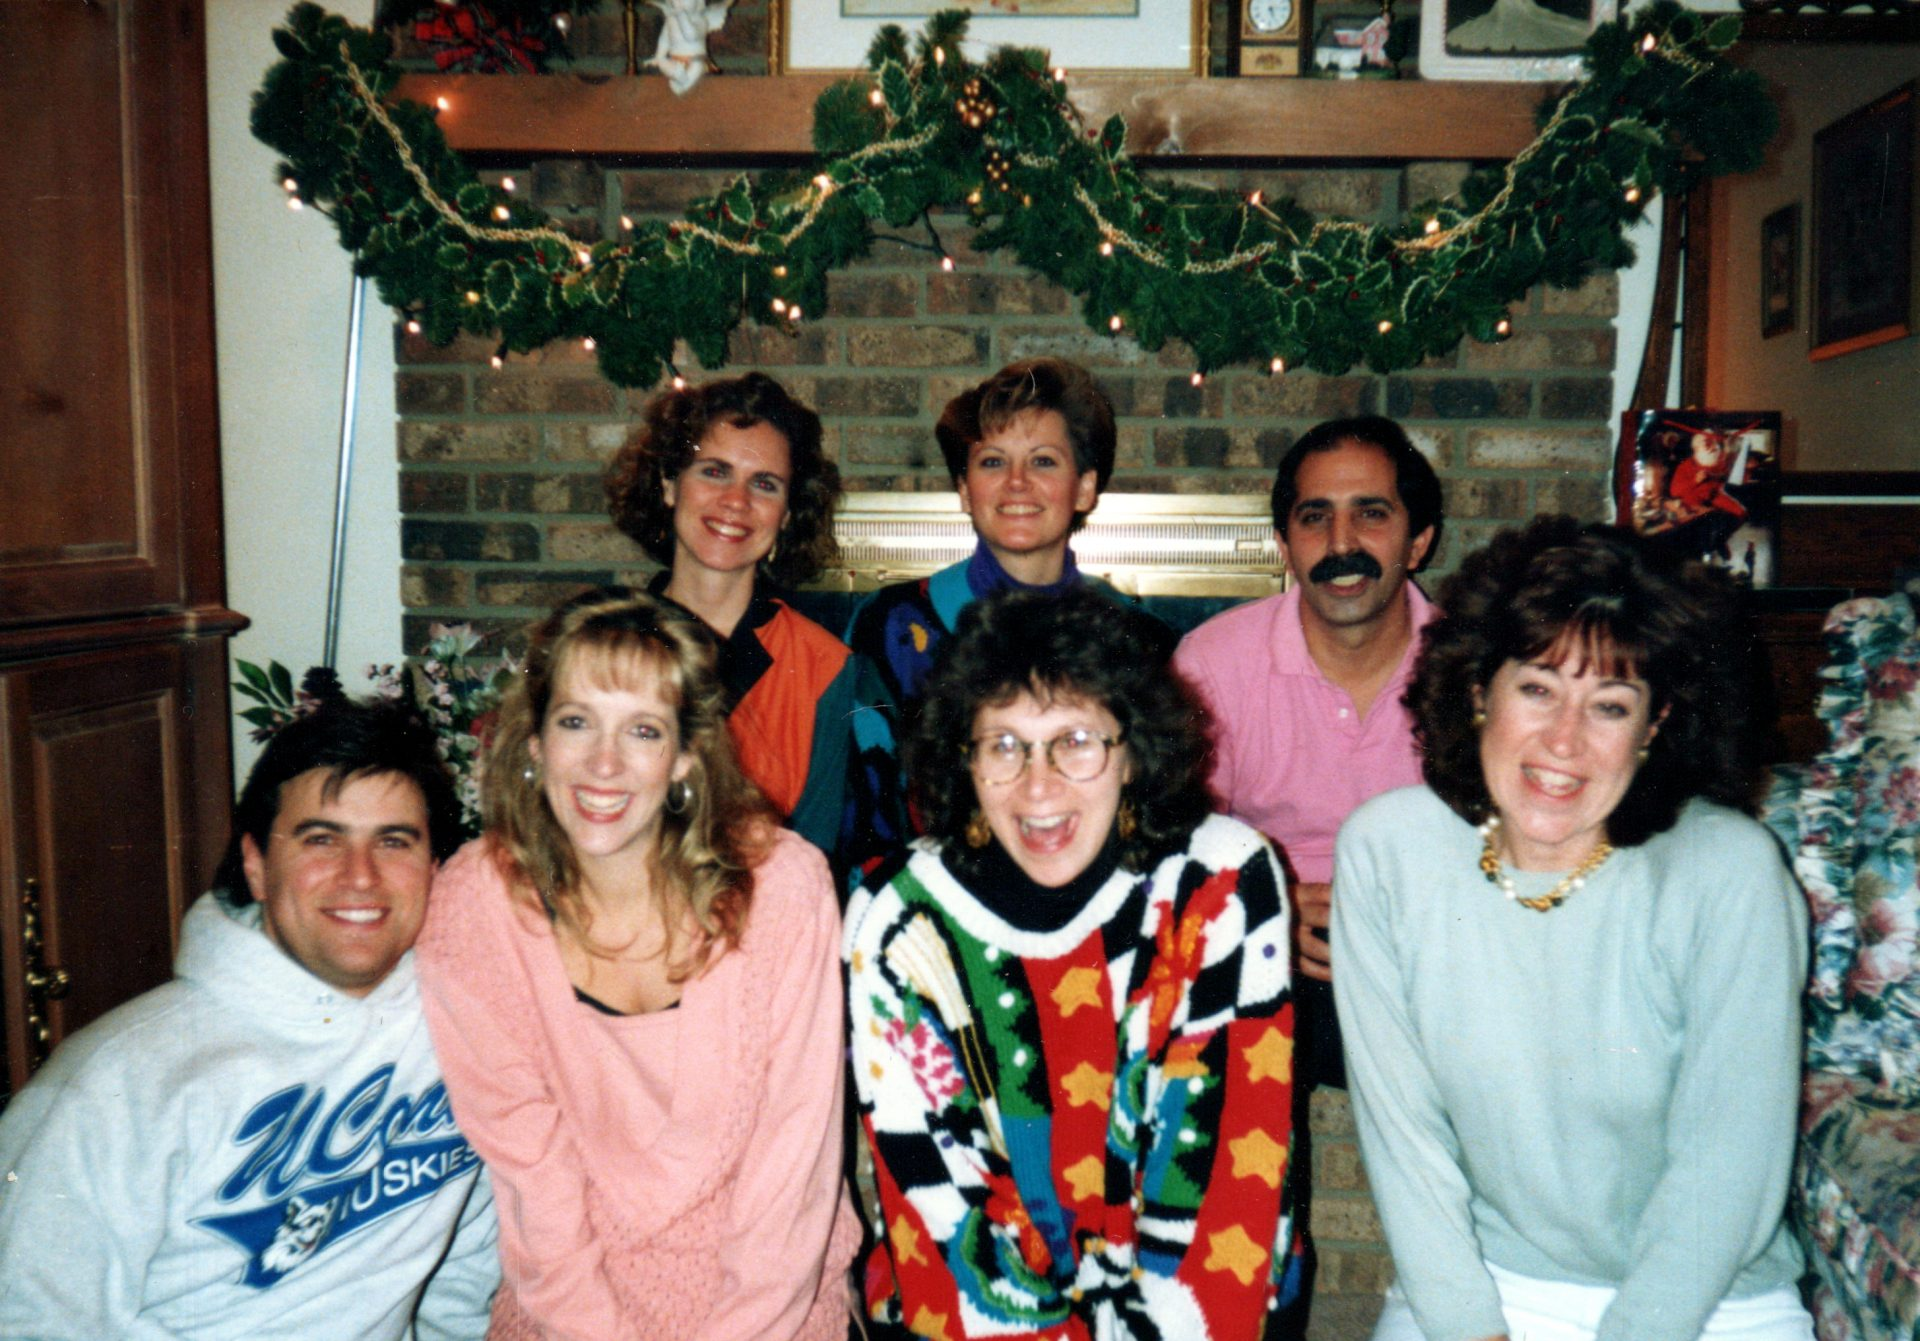 Jimmy with friends (circa 1992)